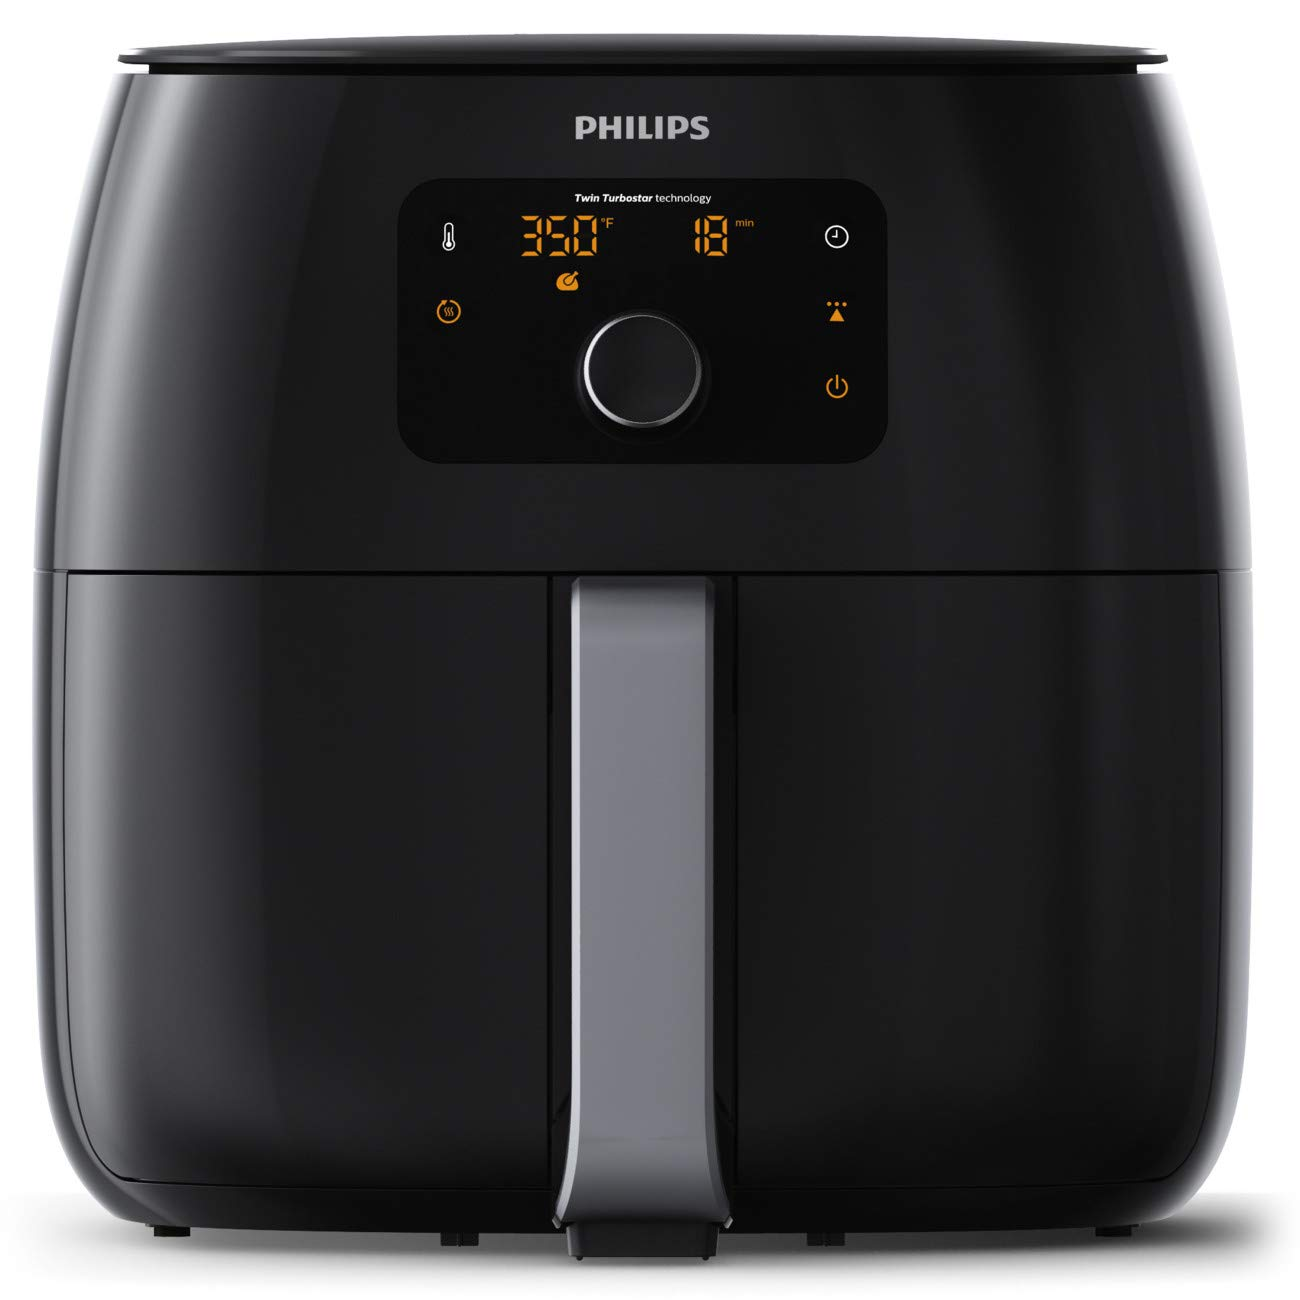 Philips Twin TurboStar Technology XXL Airfryer with Fat Reducer, Digital Interface 3lb/4qt- HD9650/96 by PHILIPS